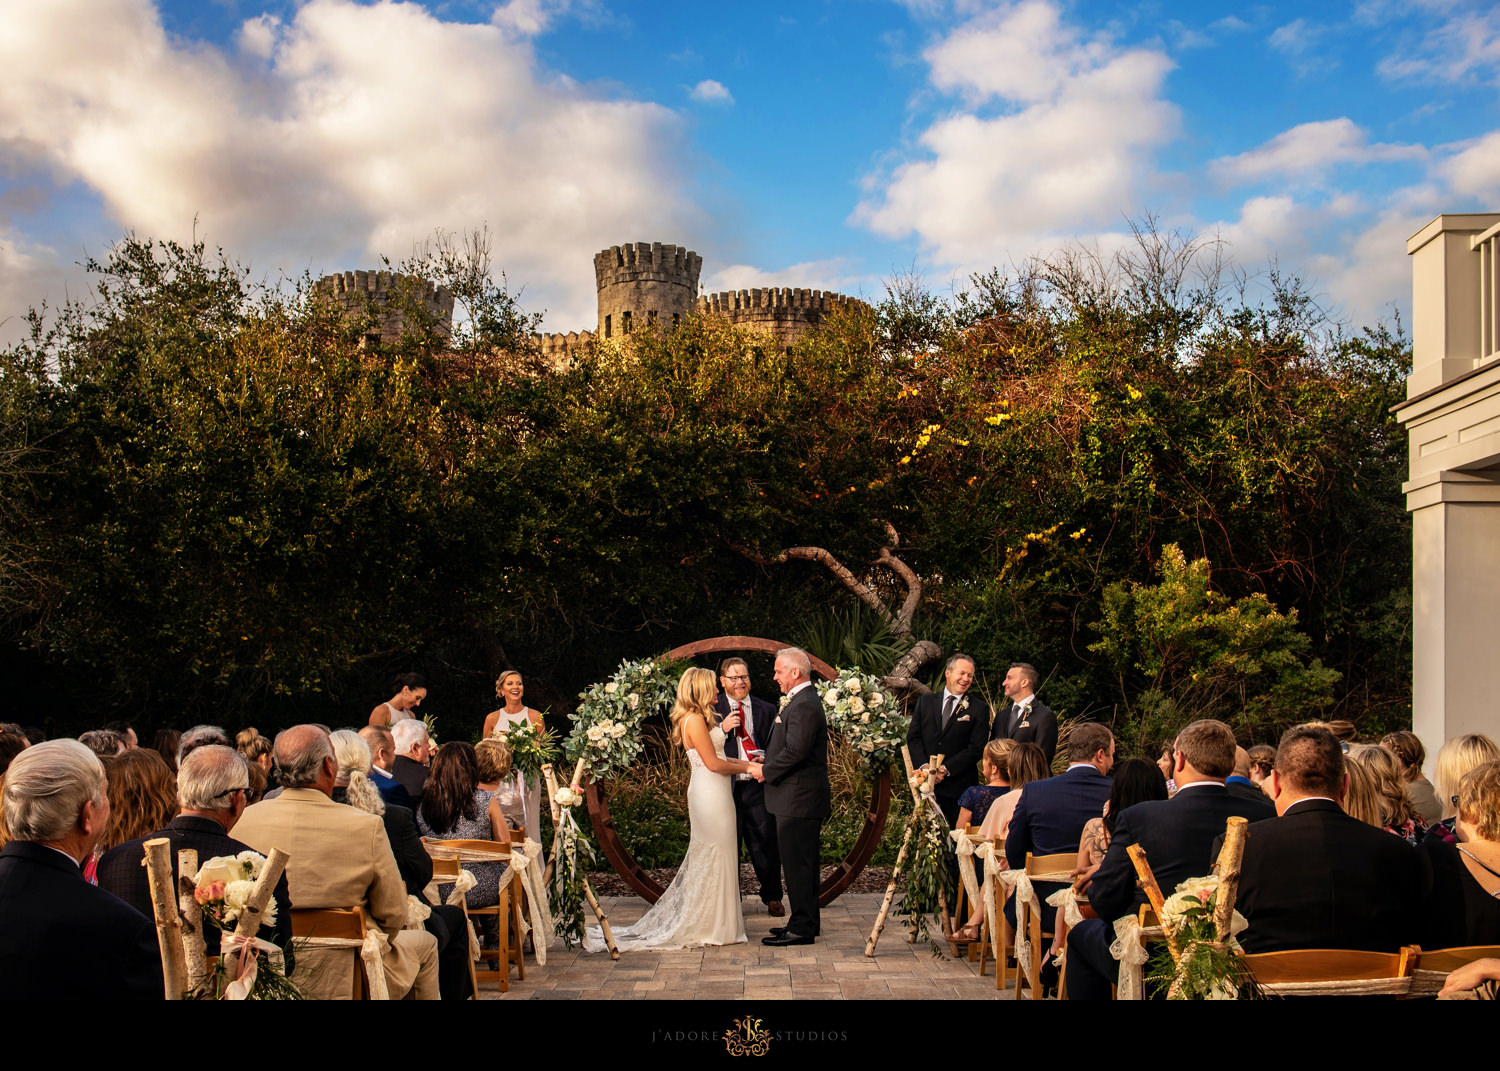 Wide angle ceremony photo.  Castle is int the background.  Blue sky